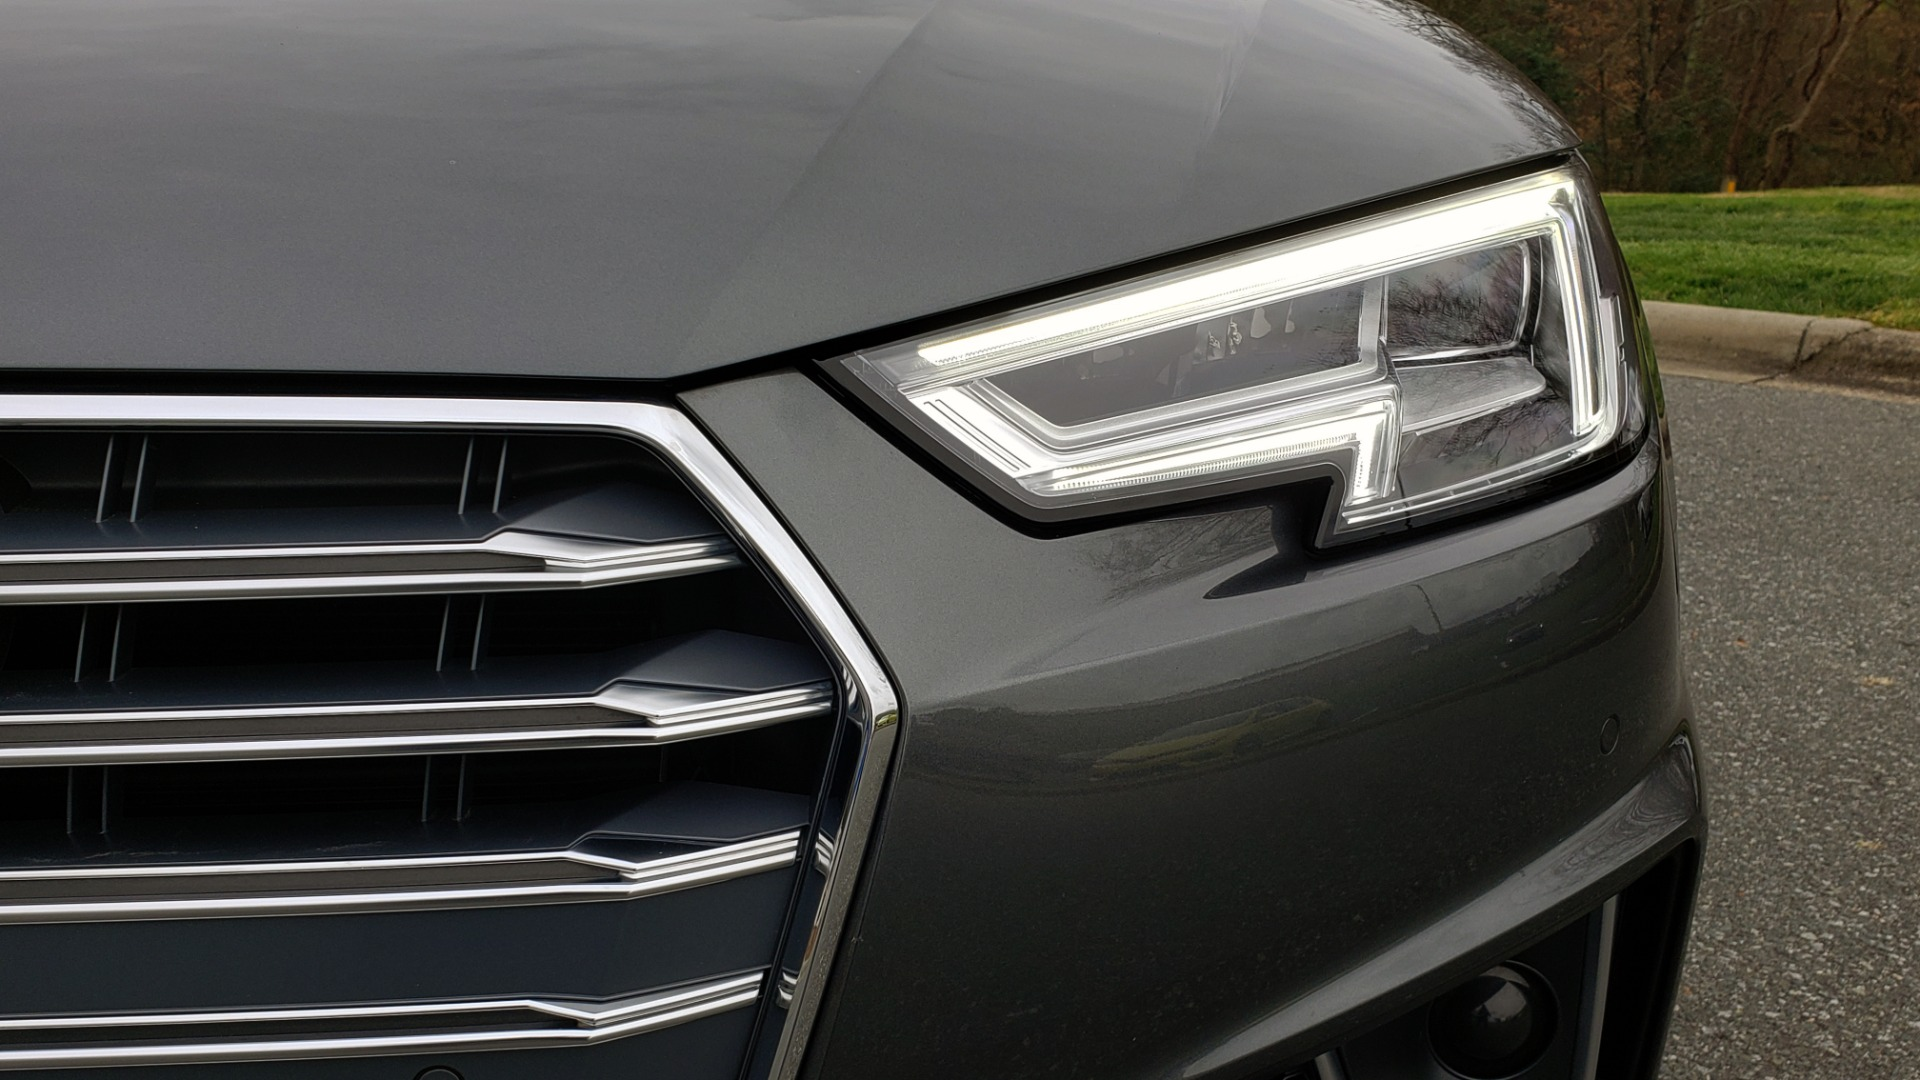 Used 2019 Audi S4 PREMIUM PLUS / AWD / NAV / SUNROOF / B&O SOUND / REARVIEW for sale Sold at Formula Imports in Charlotte NC 28227 22